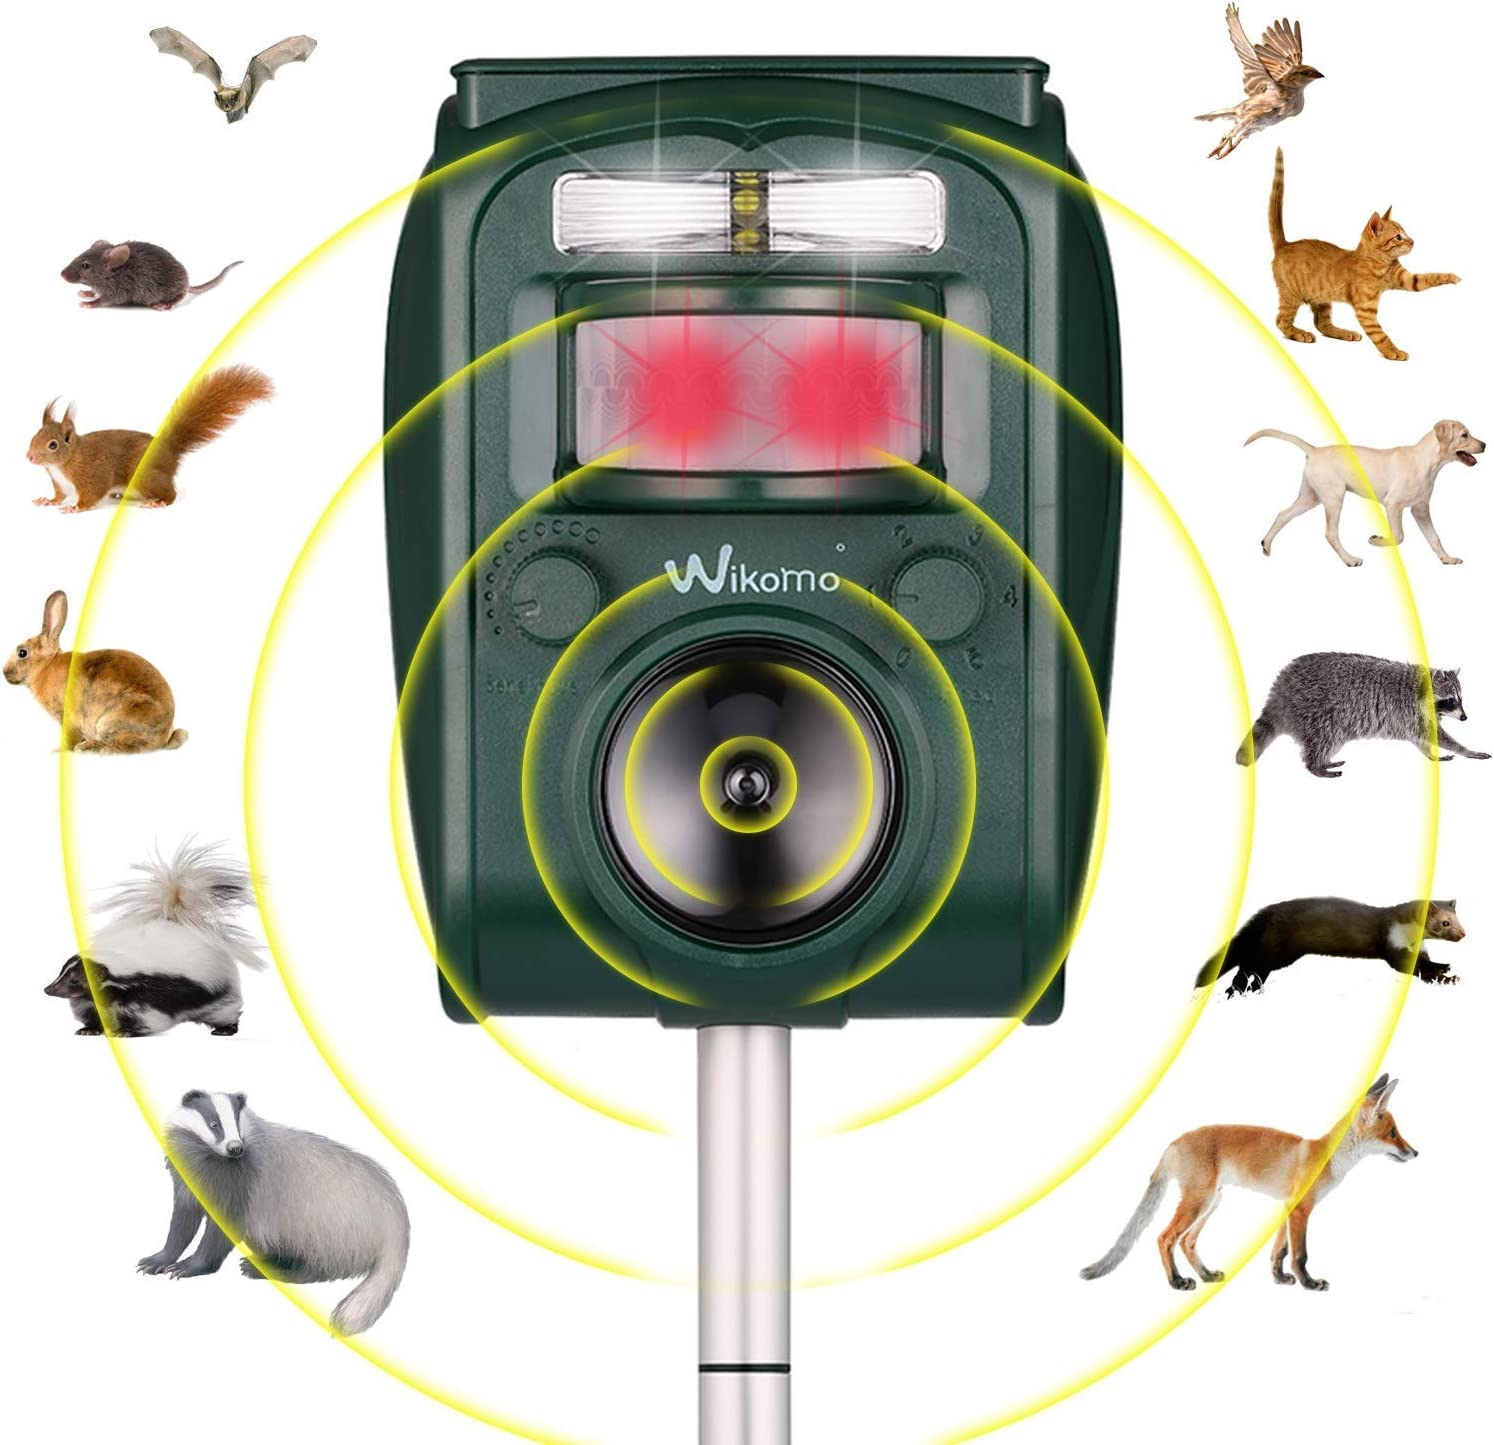 Animal Repeller, Waterproof Animal Repeller Rodent and Pest Repeller Cats, Dogs, Mice, Rabbit, Squirrel Repeller, Motion Activated and Ultrasonic Sound to Repel Animal Away